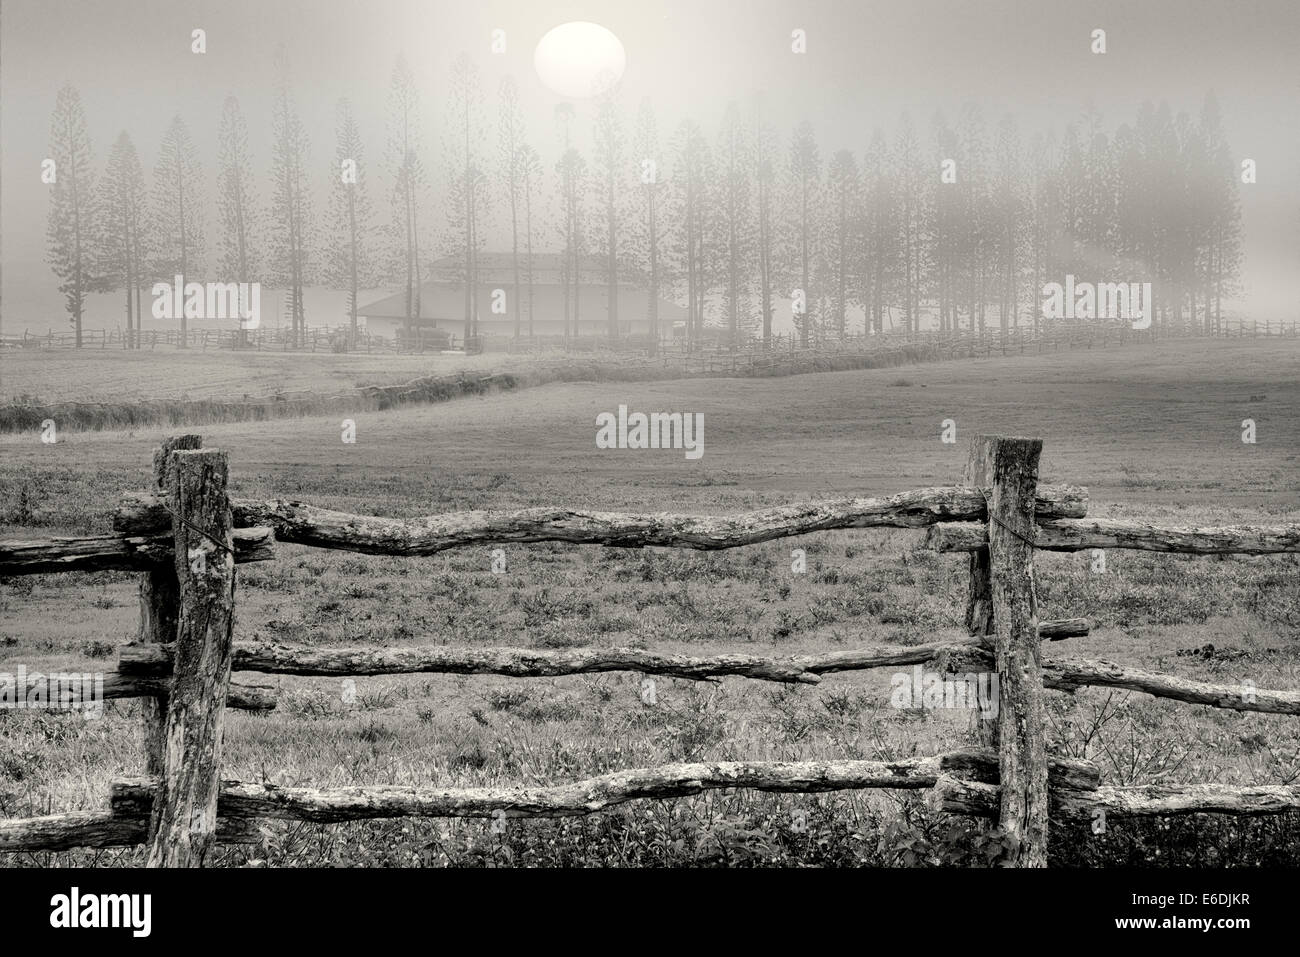 Fence, pasture and Cook Pines in fog with barn, Stables at Ko'ele. Lanai, Hawaii Stock Photo